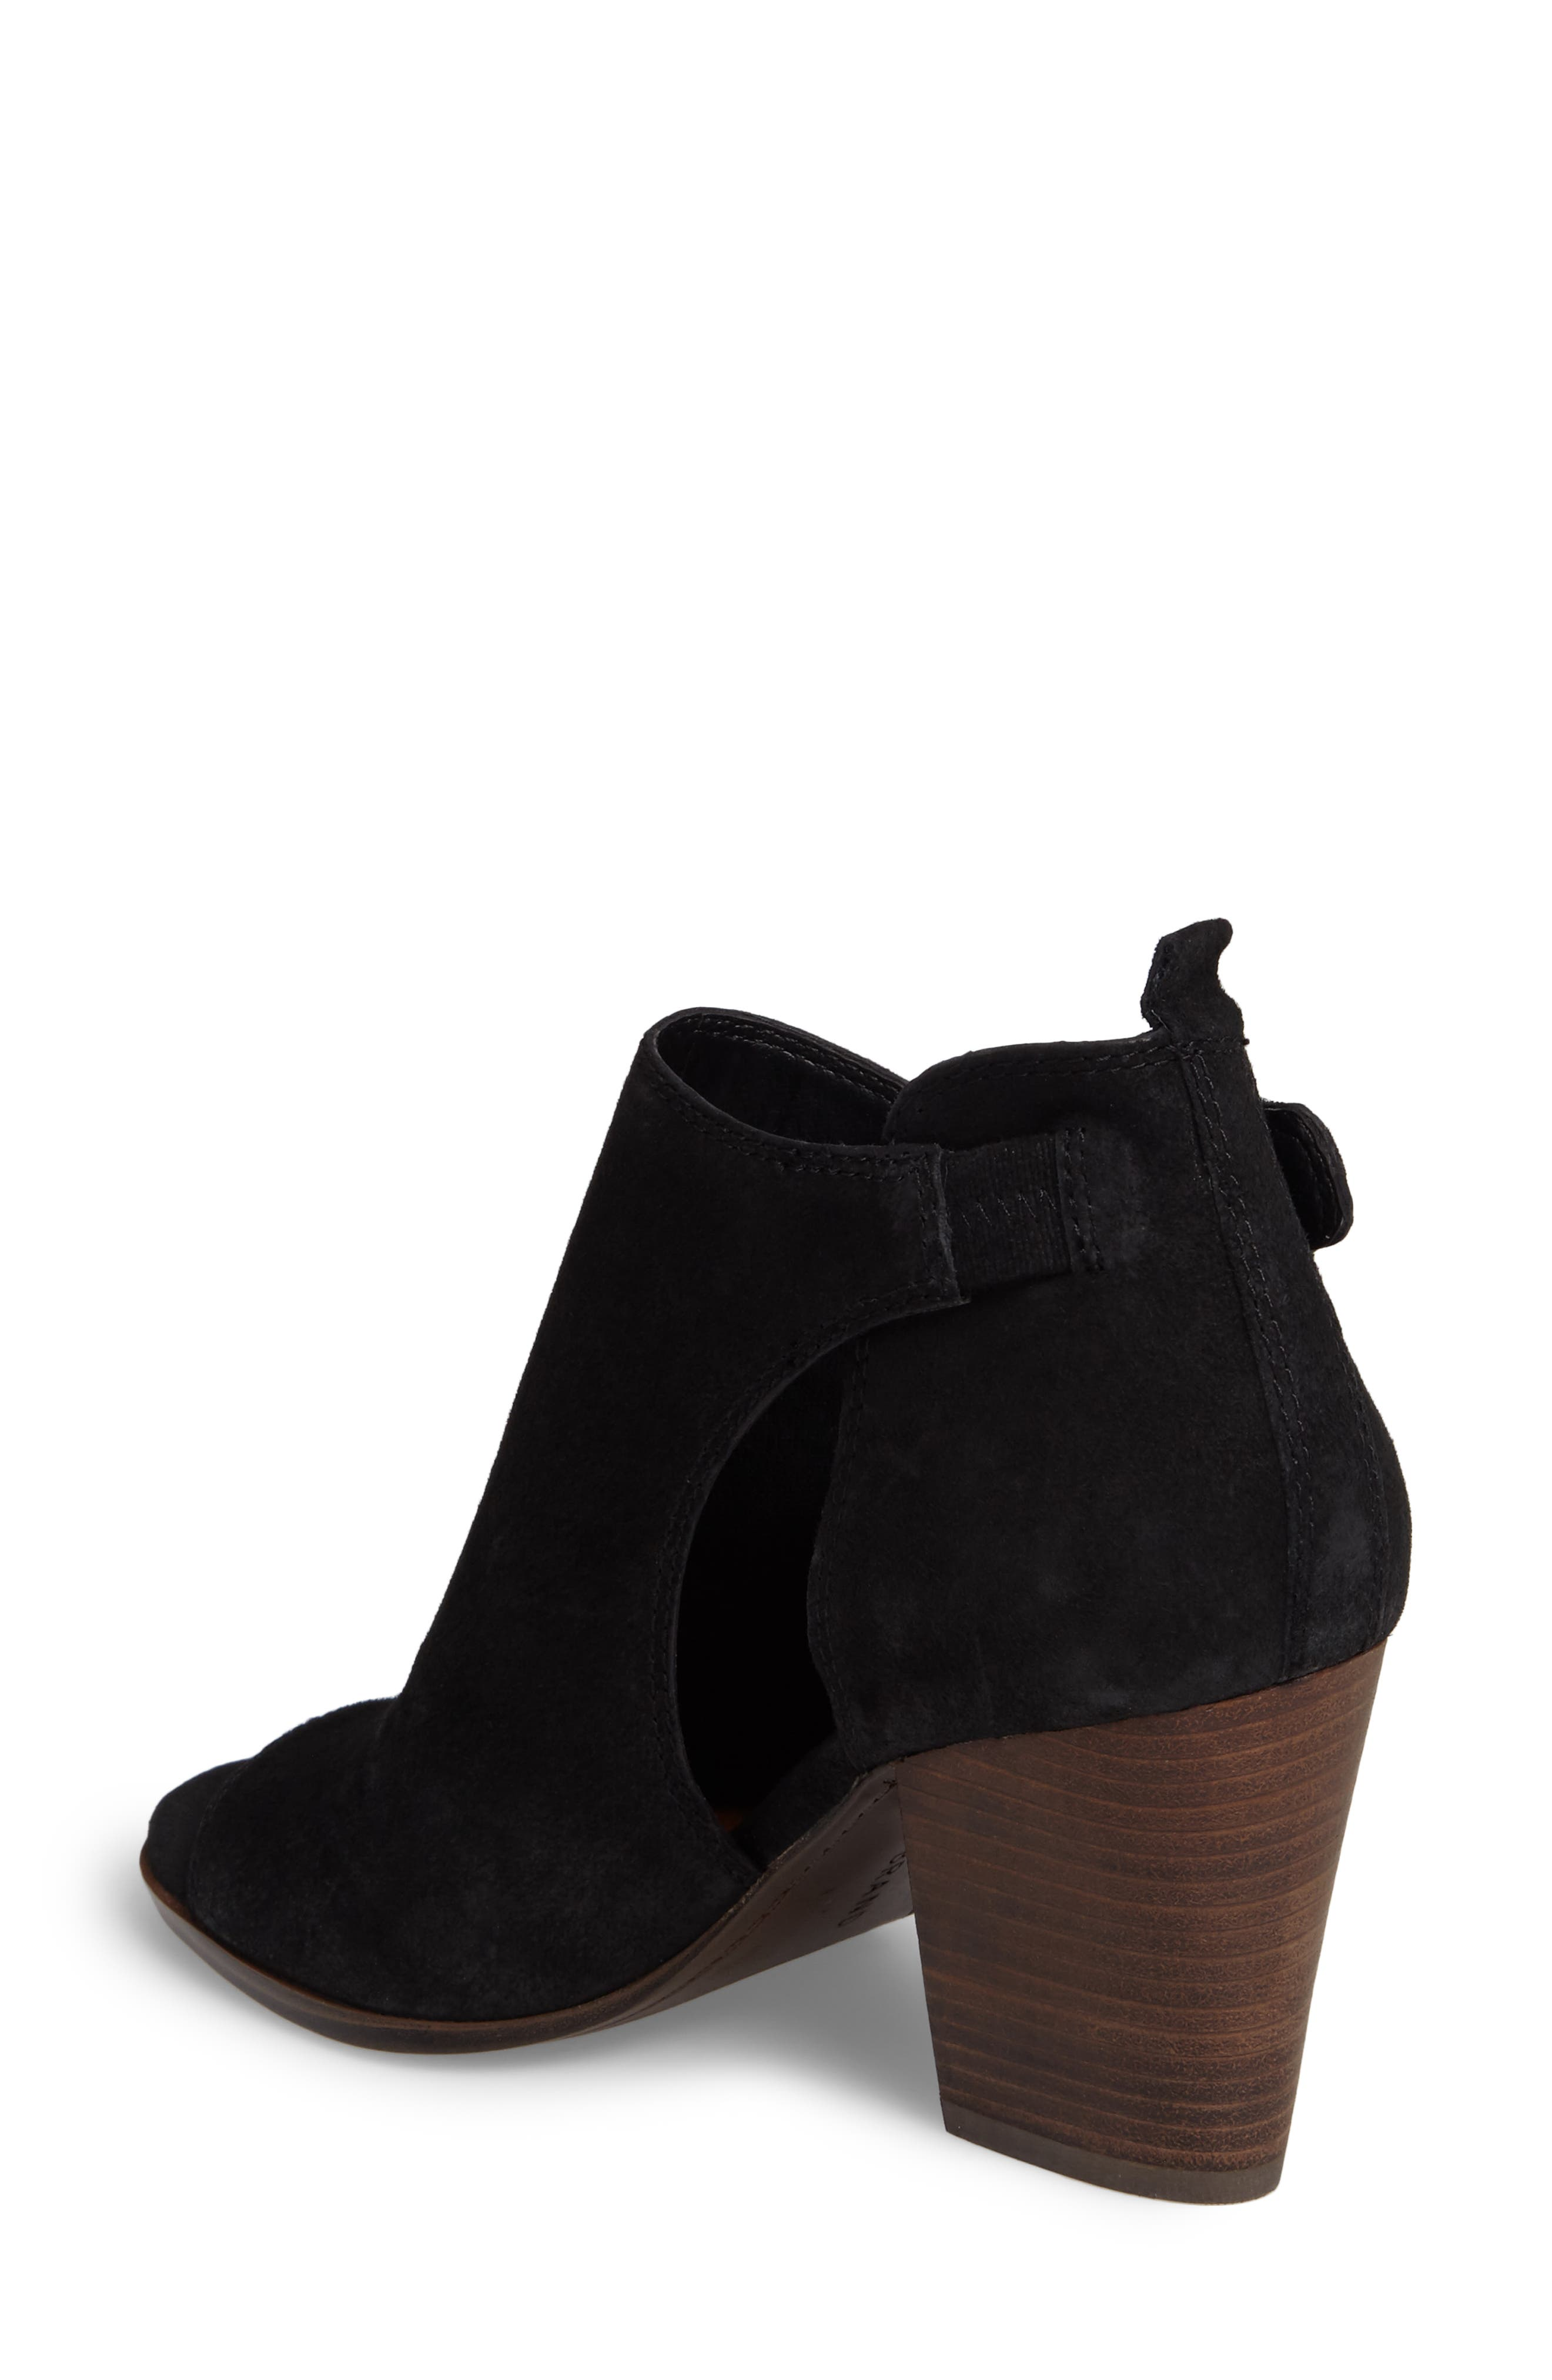 LUCKY BRAND,                             Oona Open Side Bootie,                             Alternate thumbnail 2, color,                             001